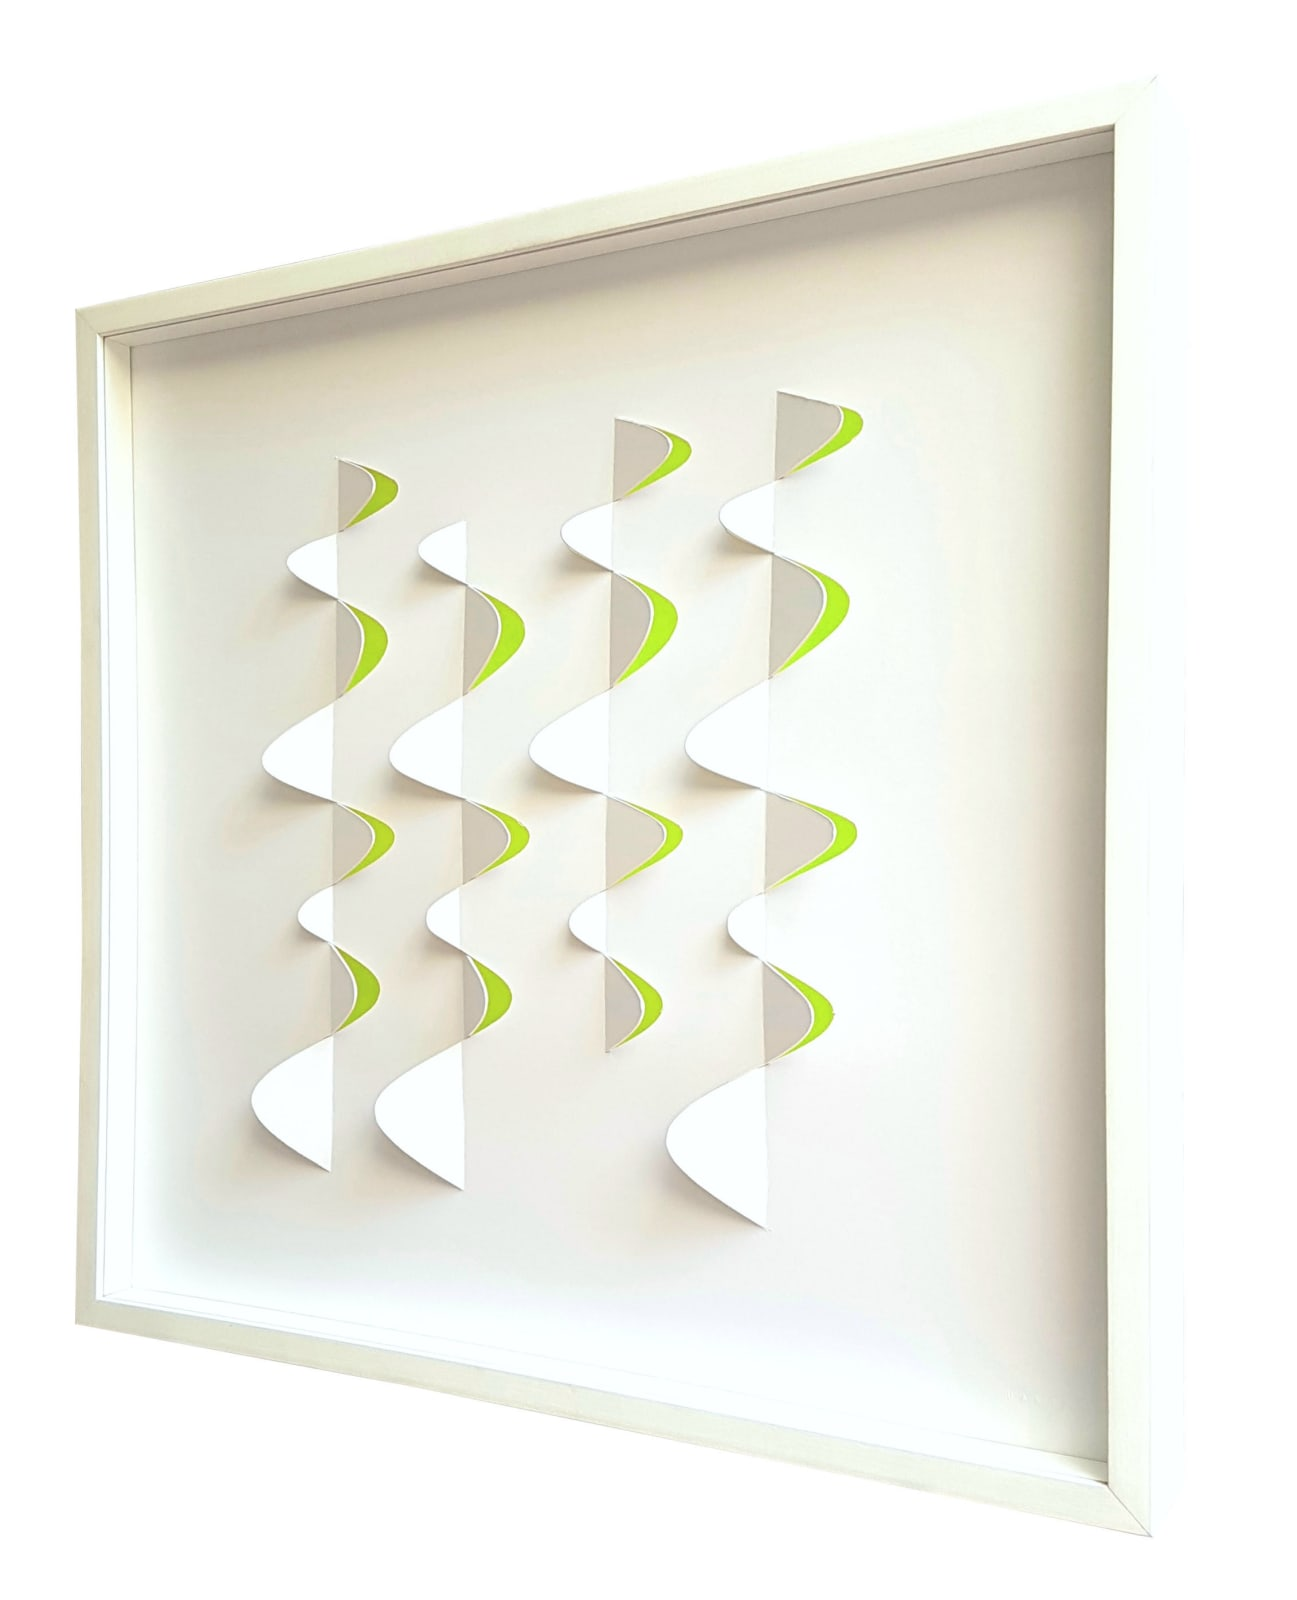 Barks No.6 Blanco-limón, 2012 Cut and folded cardboard, plexiglass and LED´s 23 3/5 × 23 3/5 × 2 4/5 in 60 × 60 × 7 cm